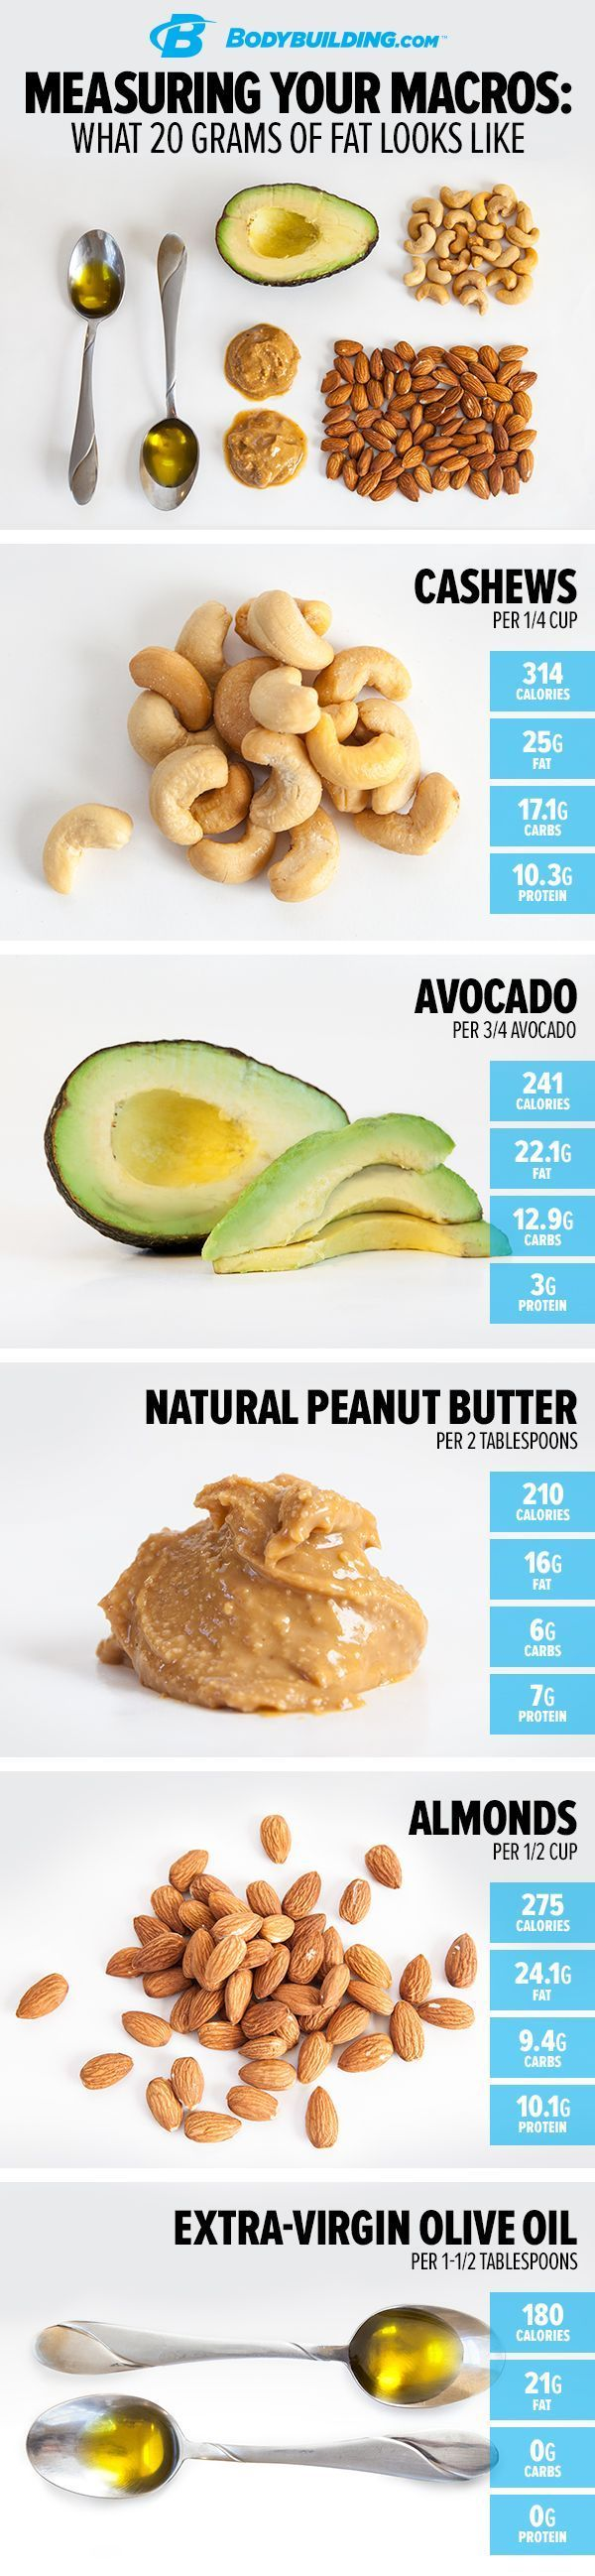 Use this one simple trick to build muscle quick How to Actually Lose Weight Fast  Properly Today (Top 5 Real Proven Ways) You…